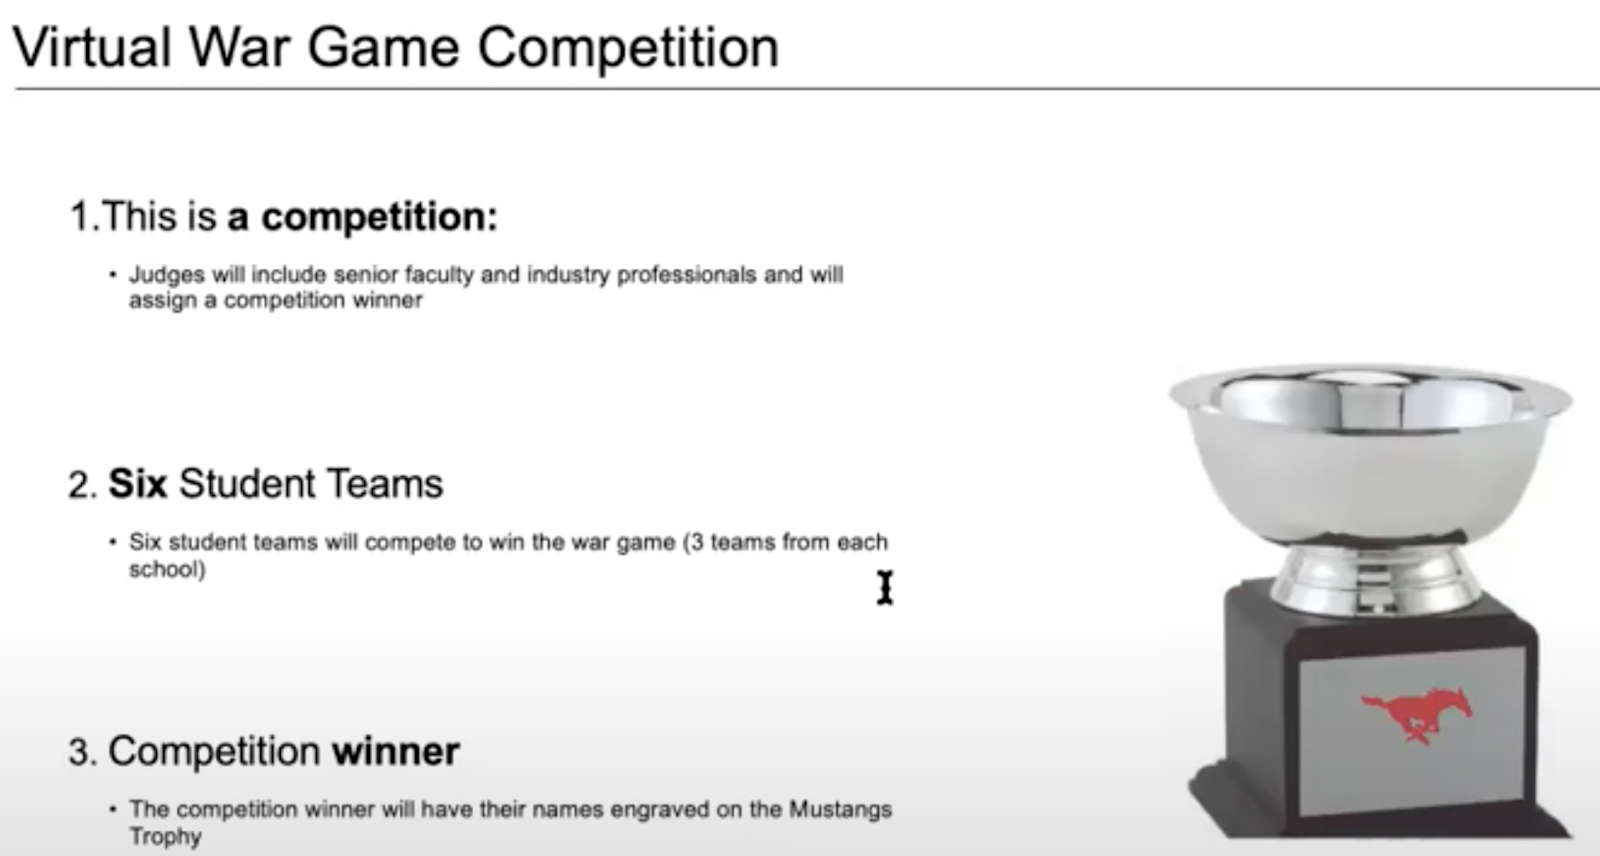 The virtual War Games presentation announces the grand prize: the SMU Cox Mustangs Trophy.